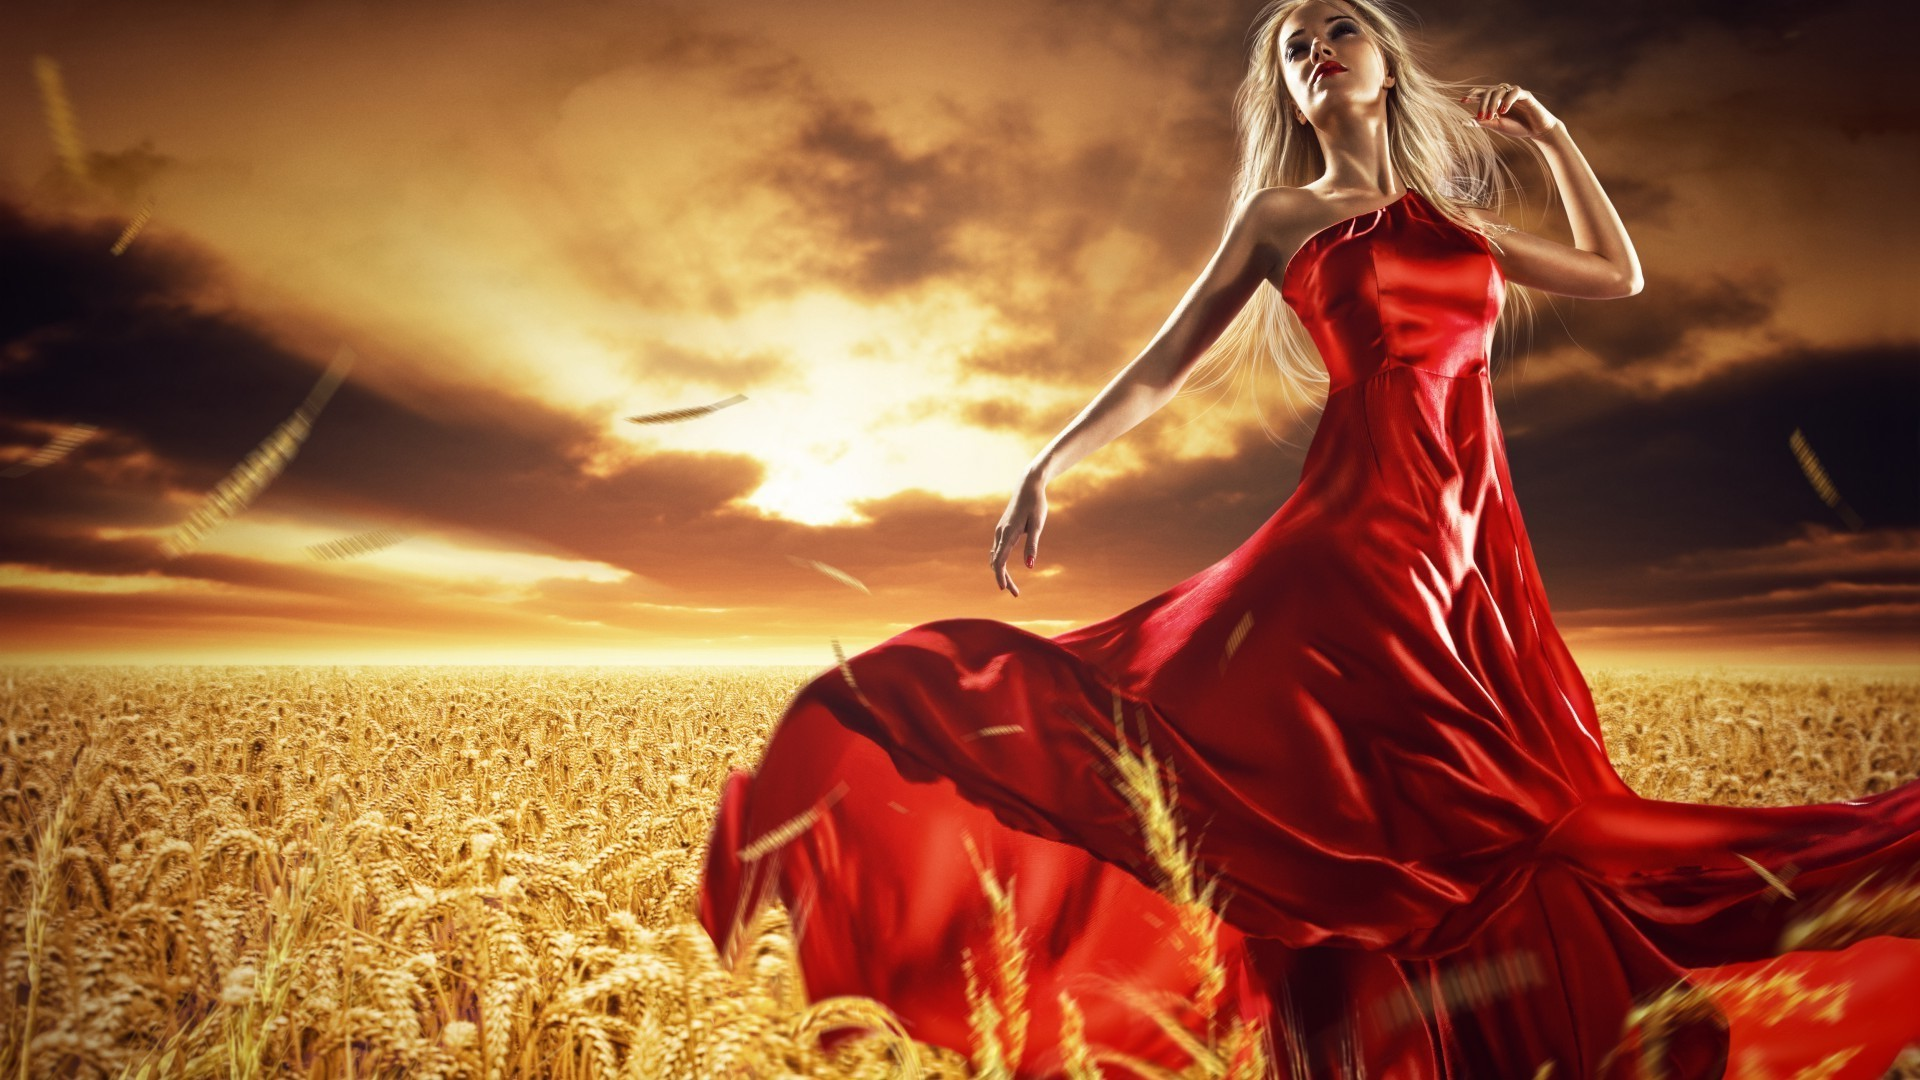 dressed girls gold nature sunset summer wheat sky woman